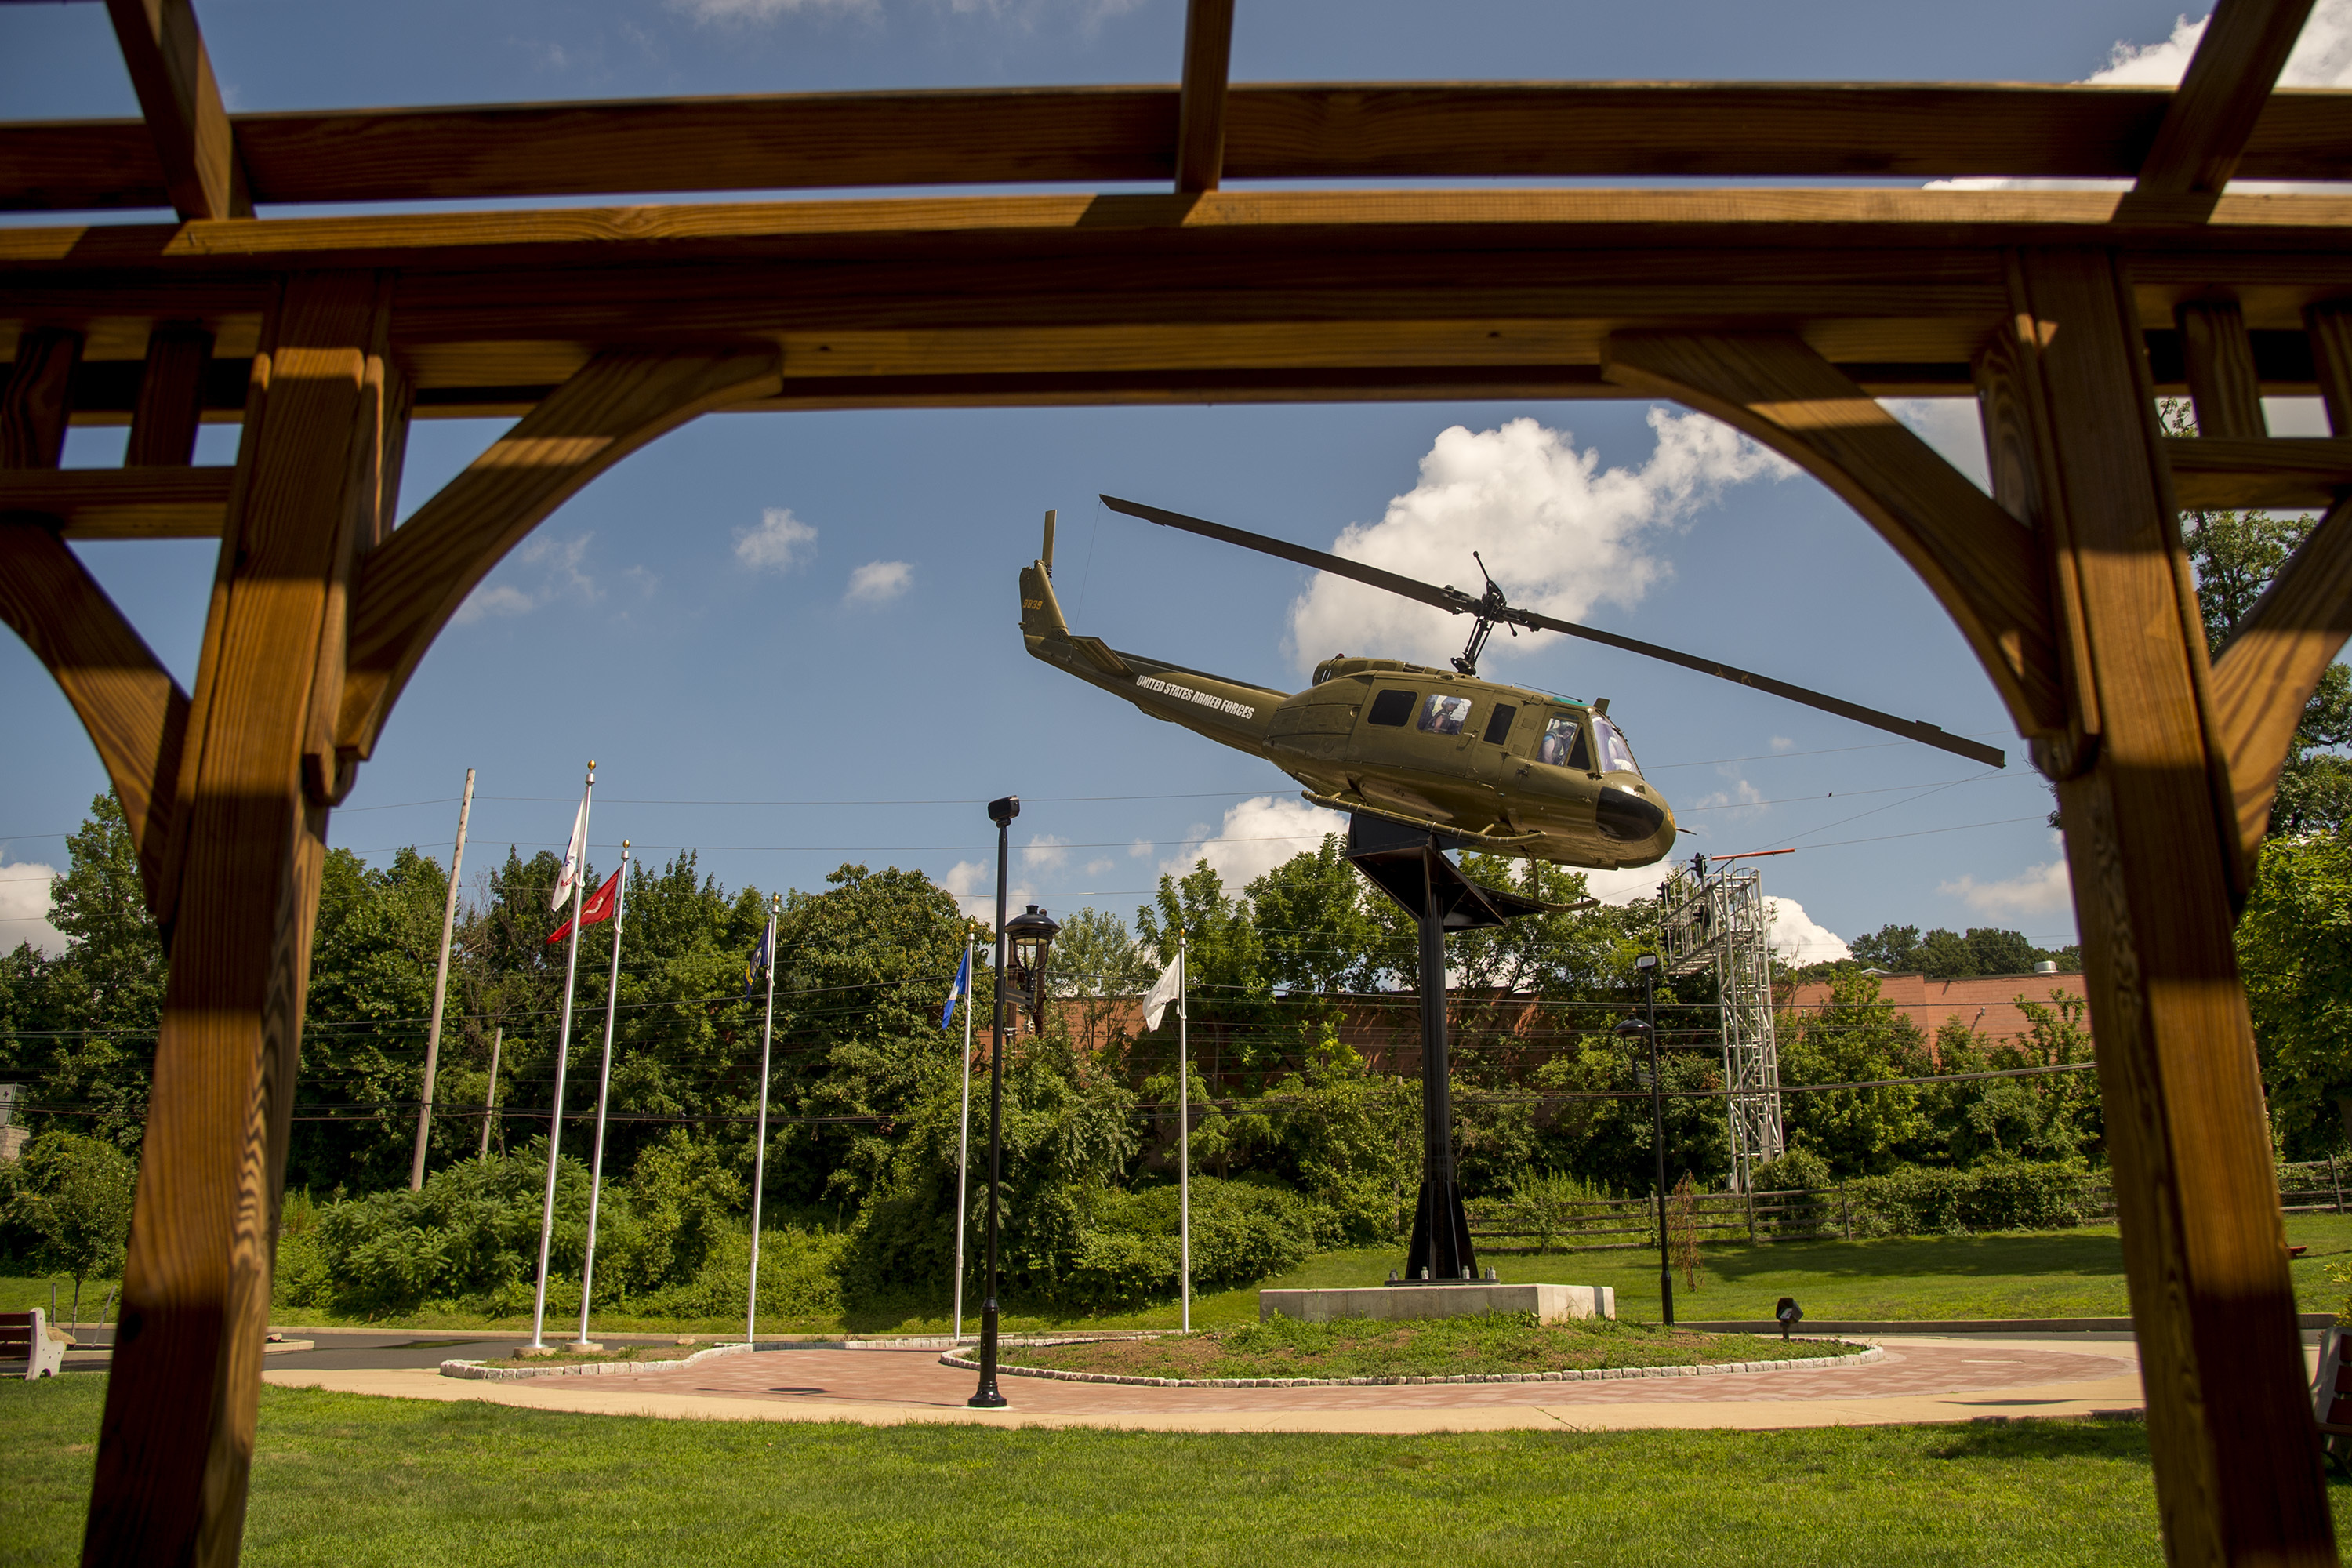 """An actual Vietnam War-era Bell UH-1 Iroquois """"Huey"""" helicopter in Willow Grove´s Veterans Memorial Park July 26, 2018. Ralph Storti, a Vietnam War veteran, spent fourteen years working to realize his vision of the memorial to honor members of all branches of the armed services. TOM GRALISH / Staff Photographer"""